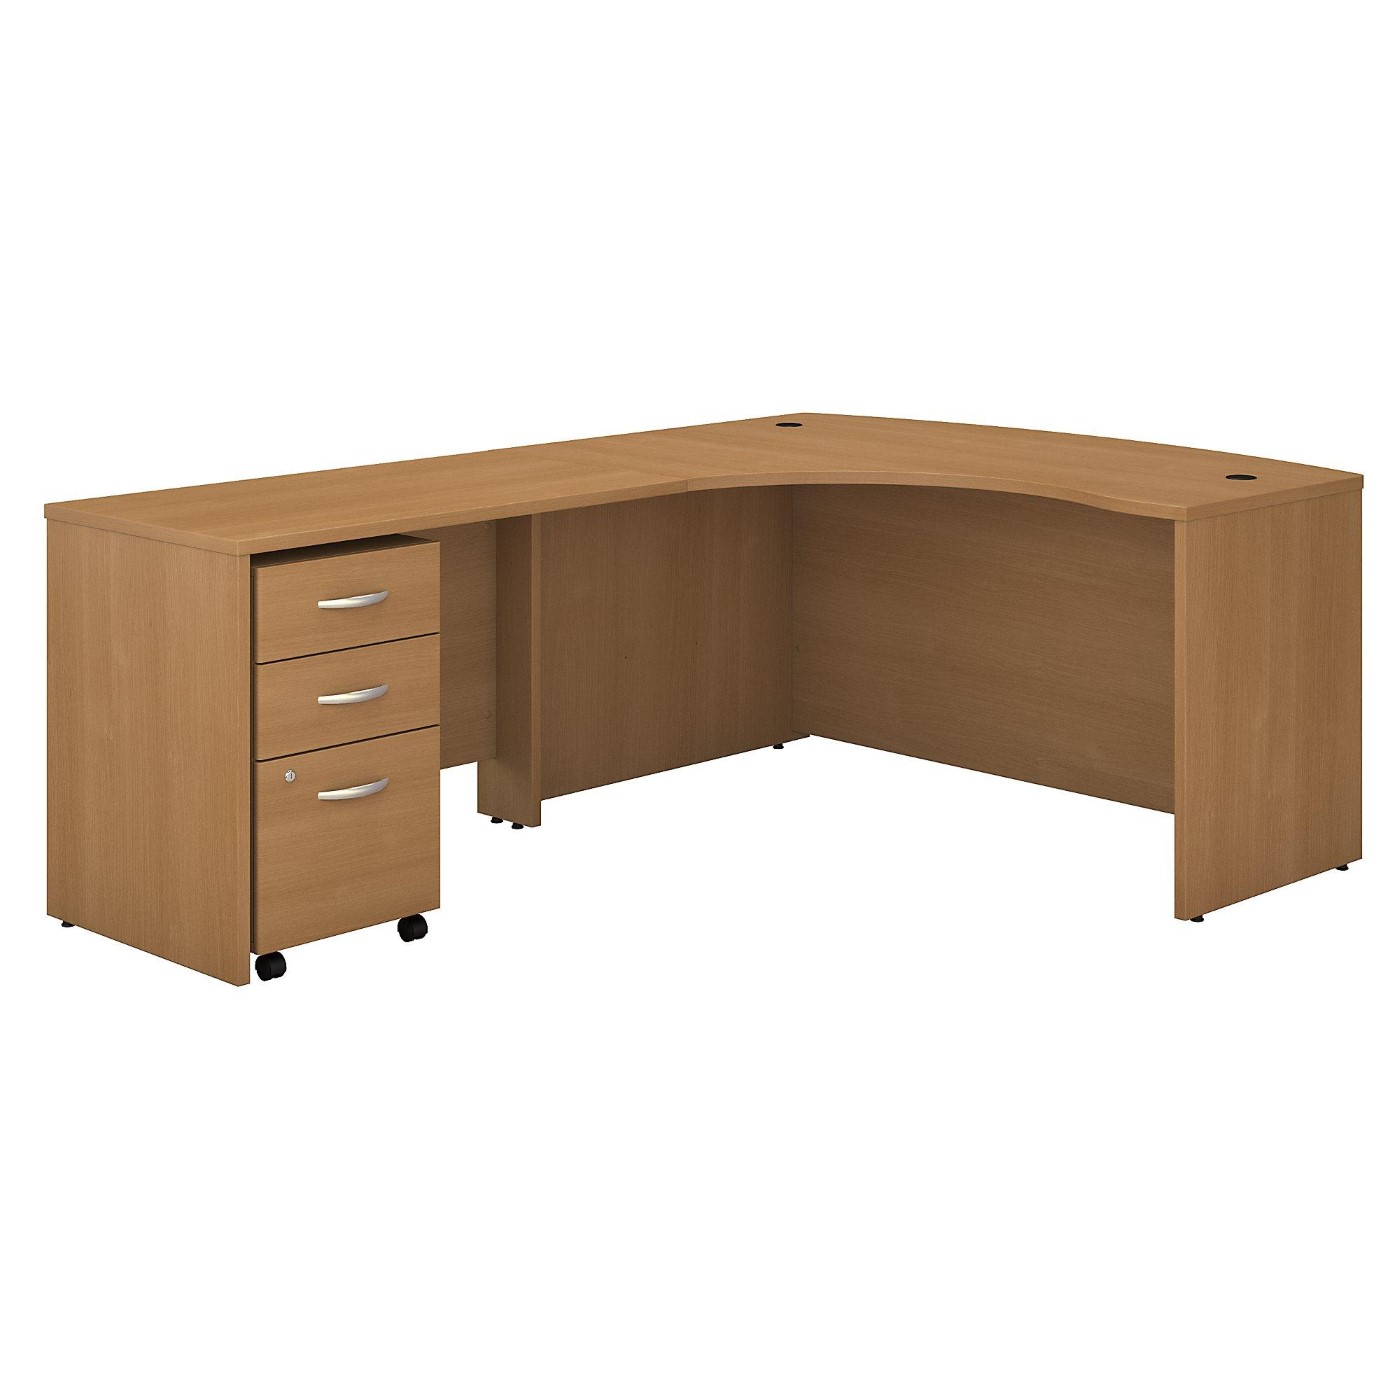 BUSH BUSINESS FURNITURE SERIES C RIGHT HANDED L SHAPED DESK WITH MOBILE FILE CABINET. FREE SHIPPING</font></b></font>&#x1F384<font color=red><b>ERGONOMICHOME HOLIDAY SALE - ENDS DEC. 17, 2019</b></font>&#x1F384